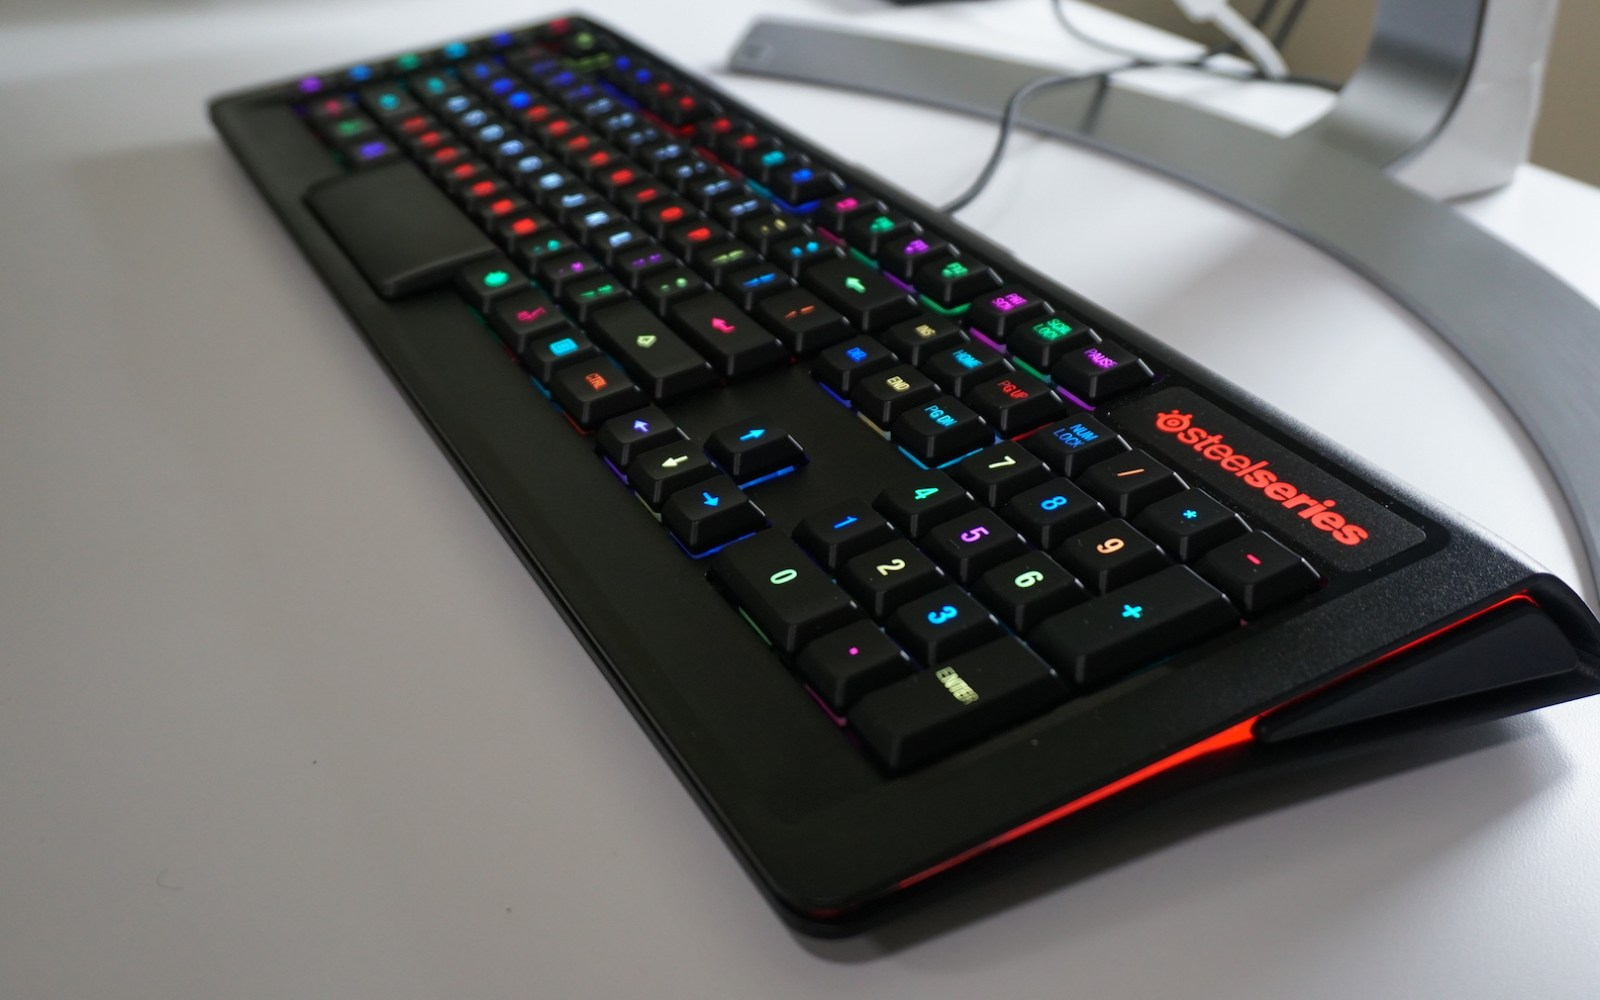 Review: SteelSeries Apex M800 mechanical keyboard with individual key LED illumination